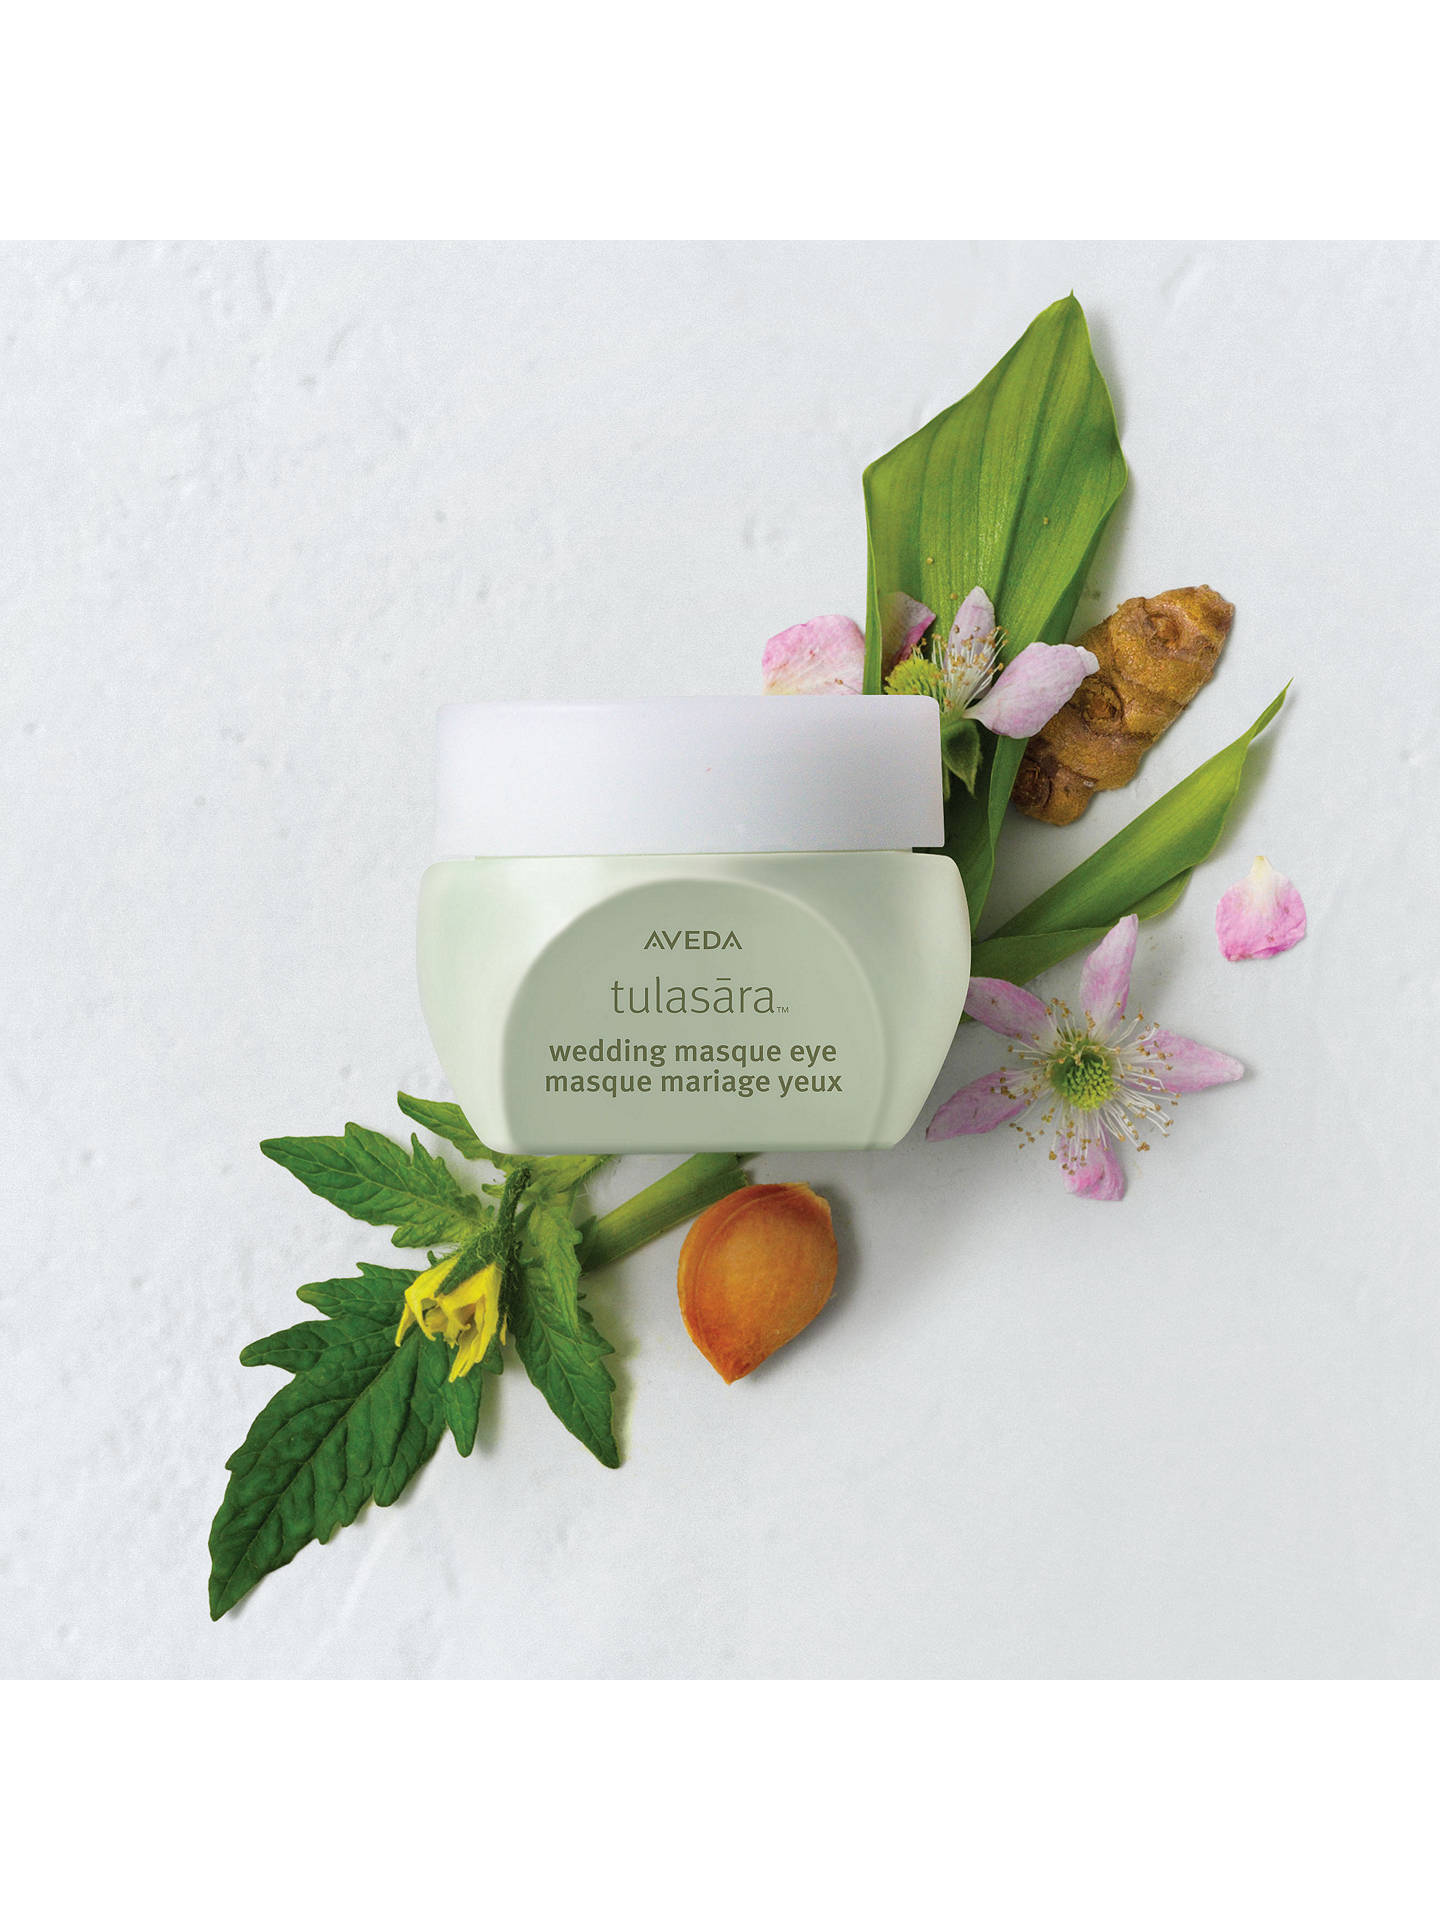 BuyAVEDA Tulasara Wedding Eye Masque, 15ml Online at johnlewis.com